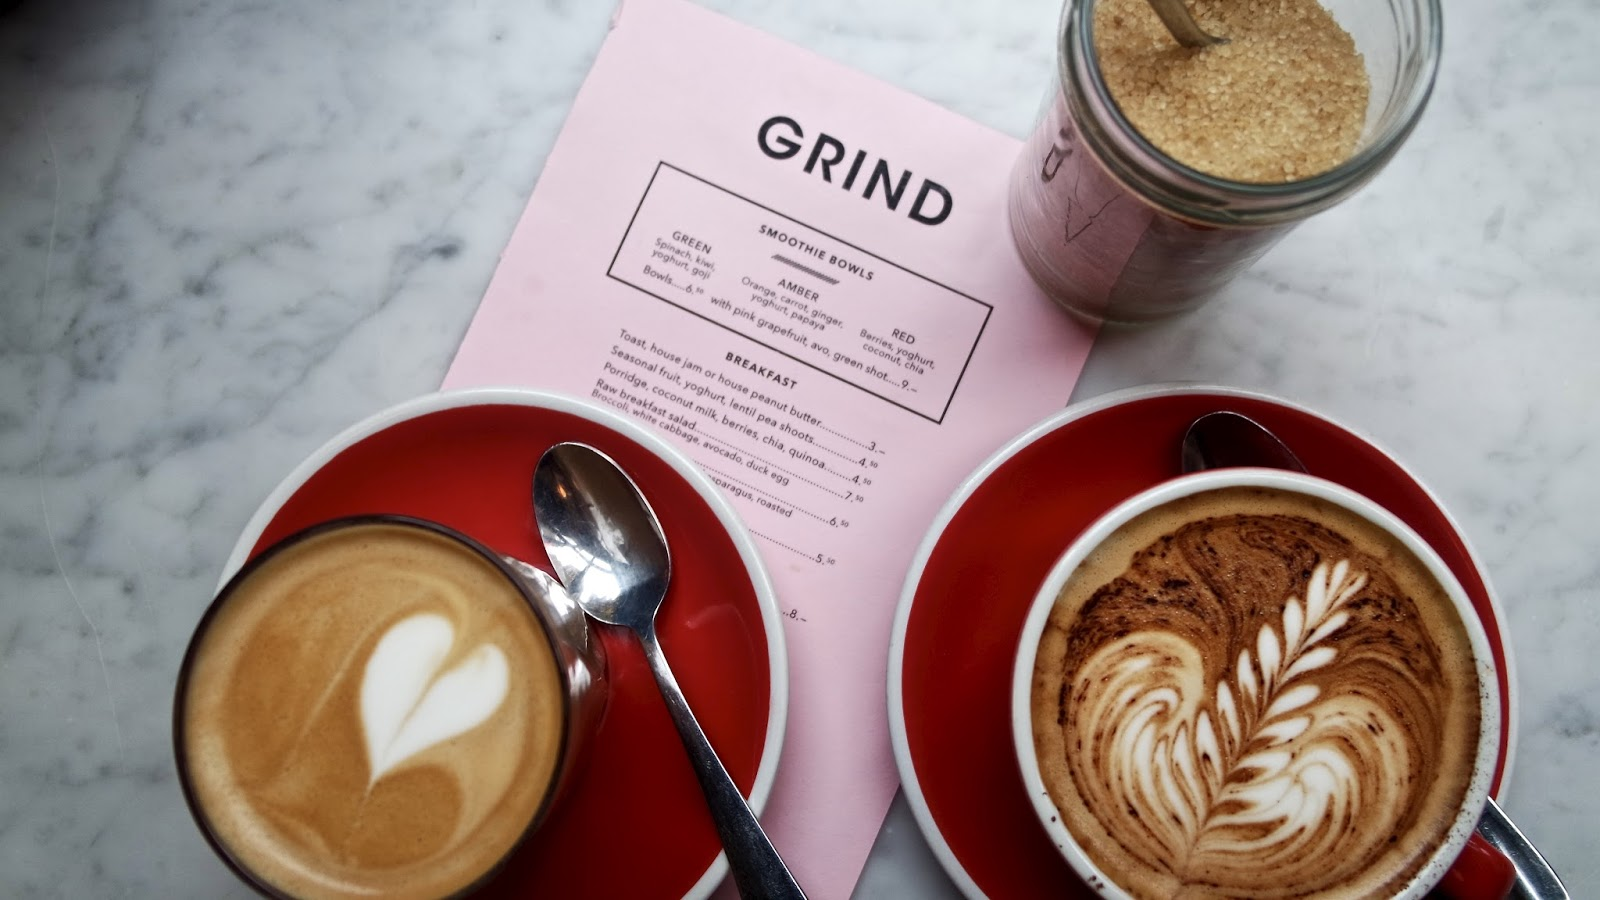 Grind Covent Garden - Five Happy Things